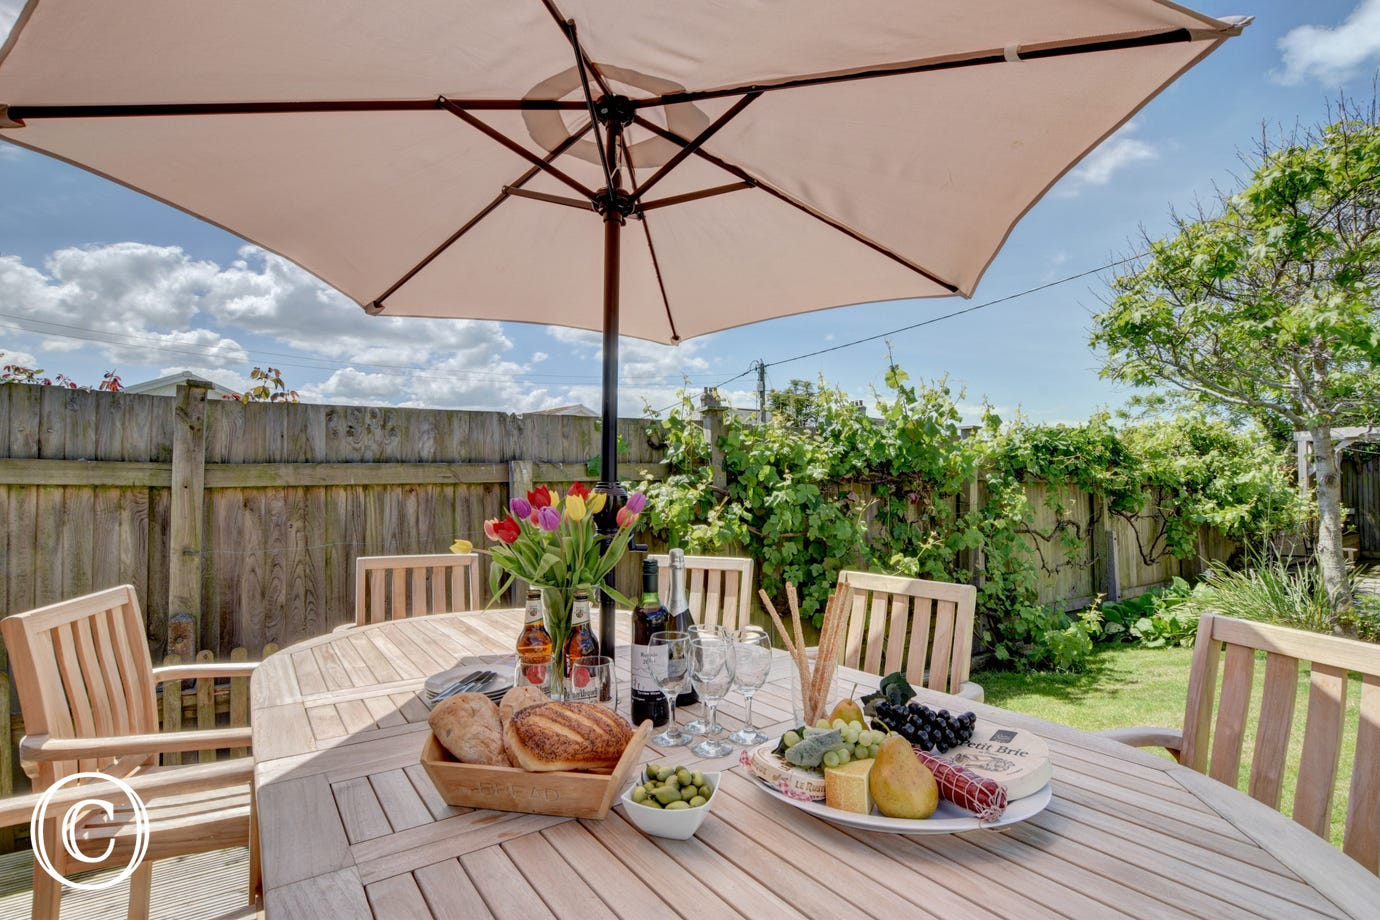 The superb patio area has a large dining table for al fresco dining